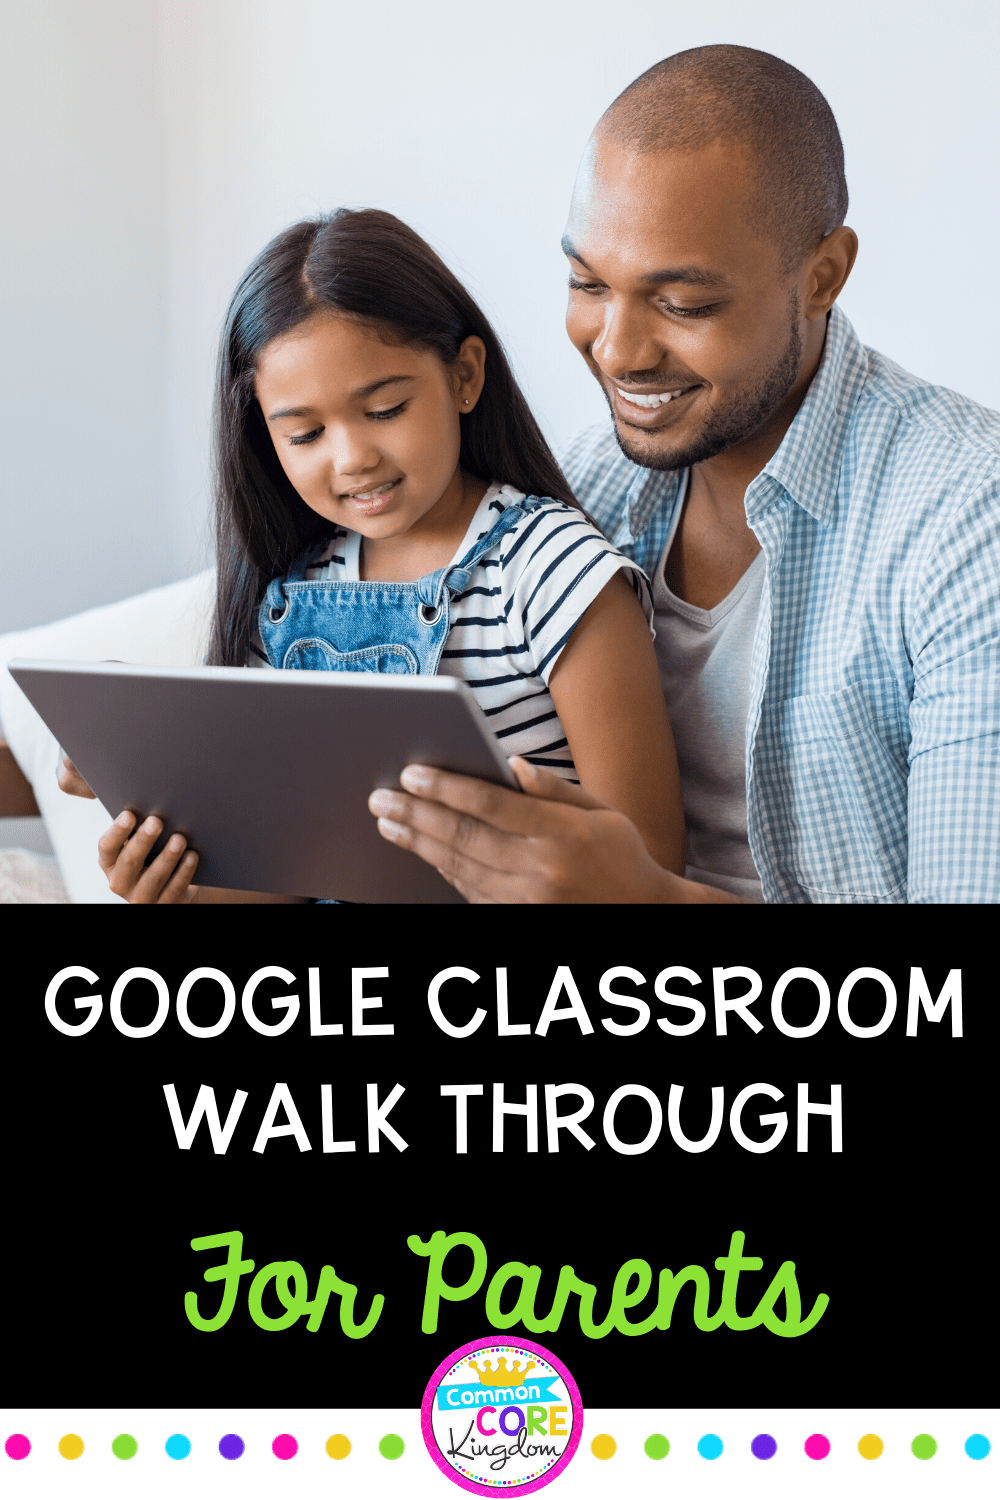 Father and daughter looking at ipad smiling with text saying google classroom walk through for parents